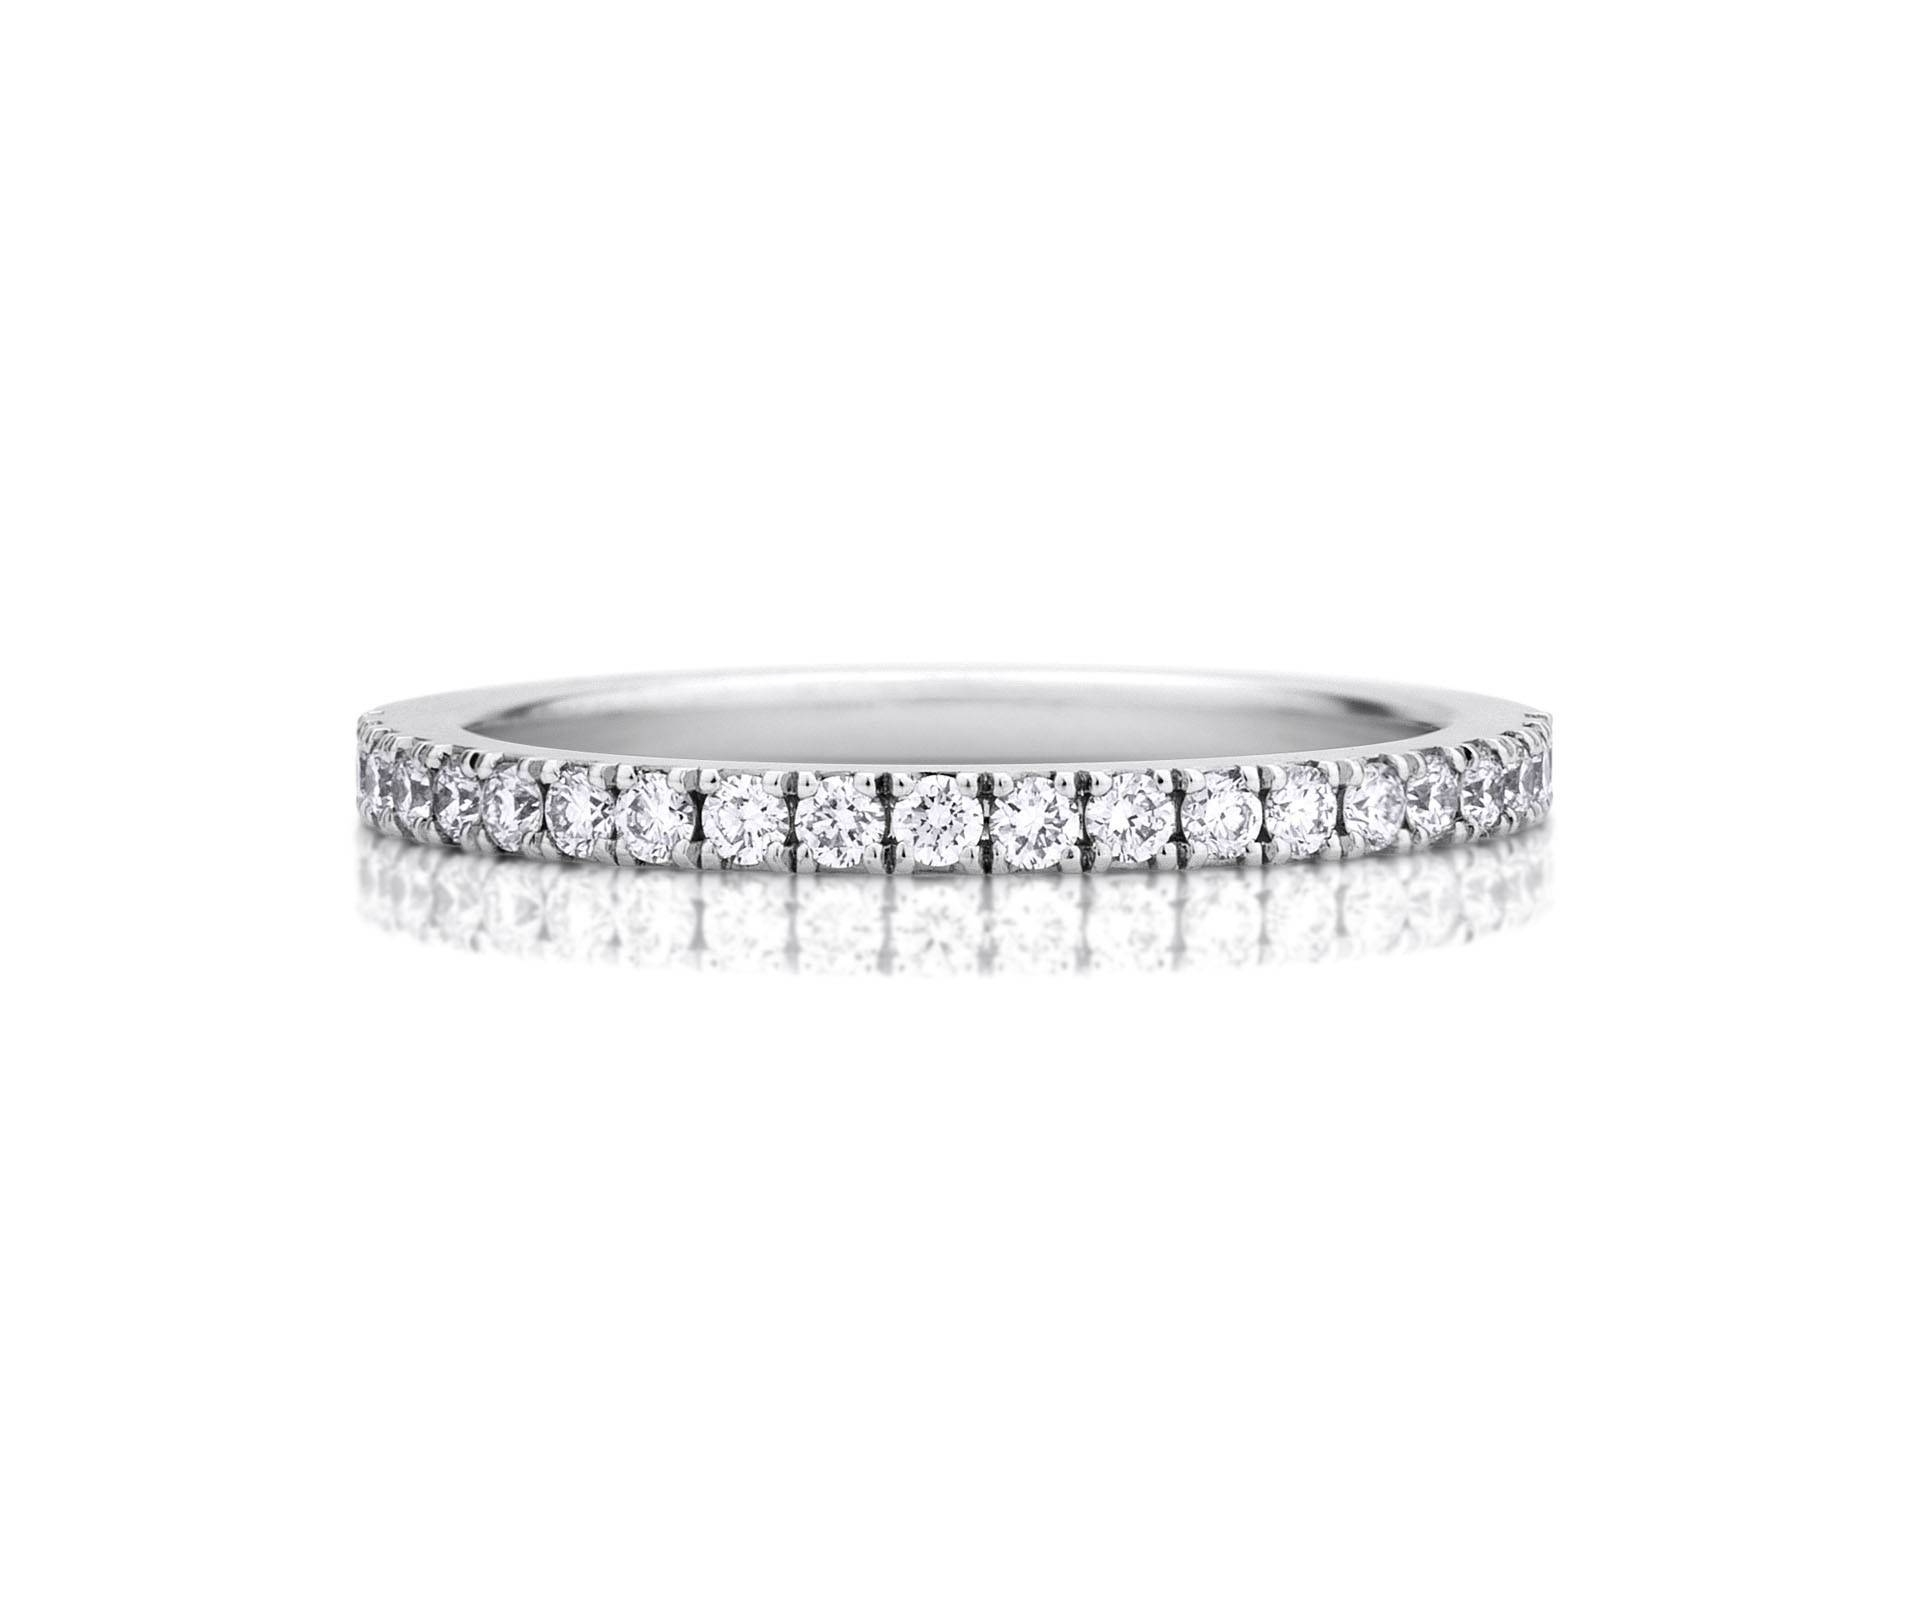 Diamond Wedding Rings & Bands | De Beers Regarding Most Recently Released Diamonds Wedding Bands (View 7 of 15)